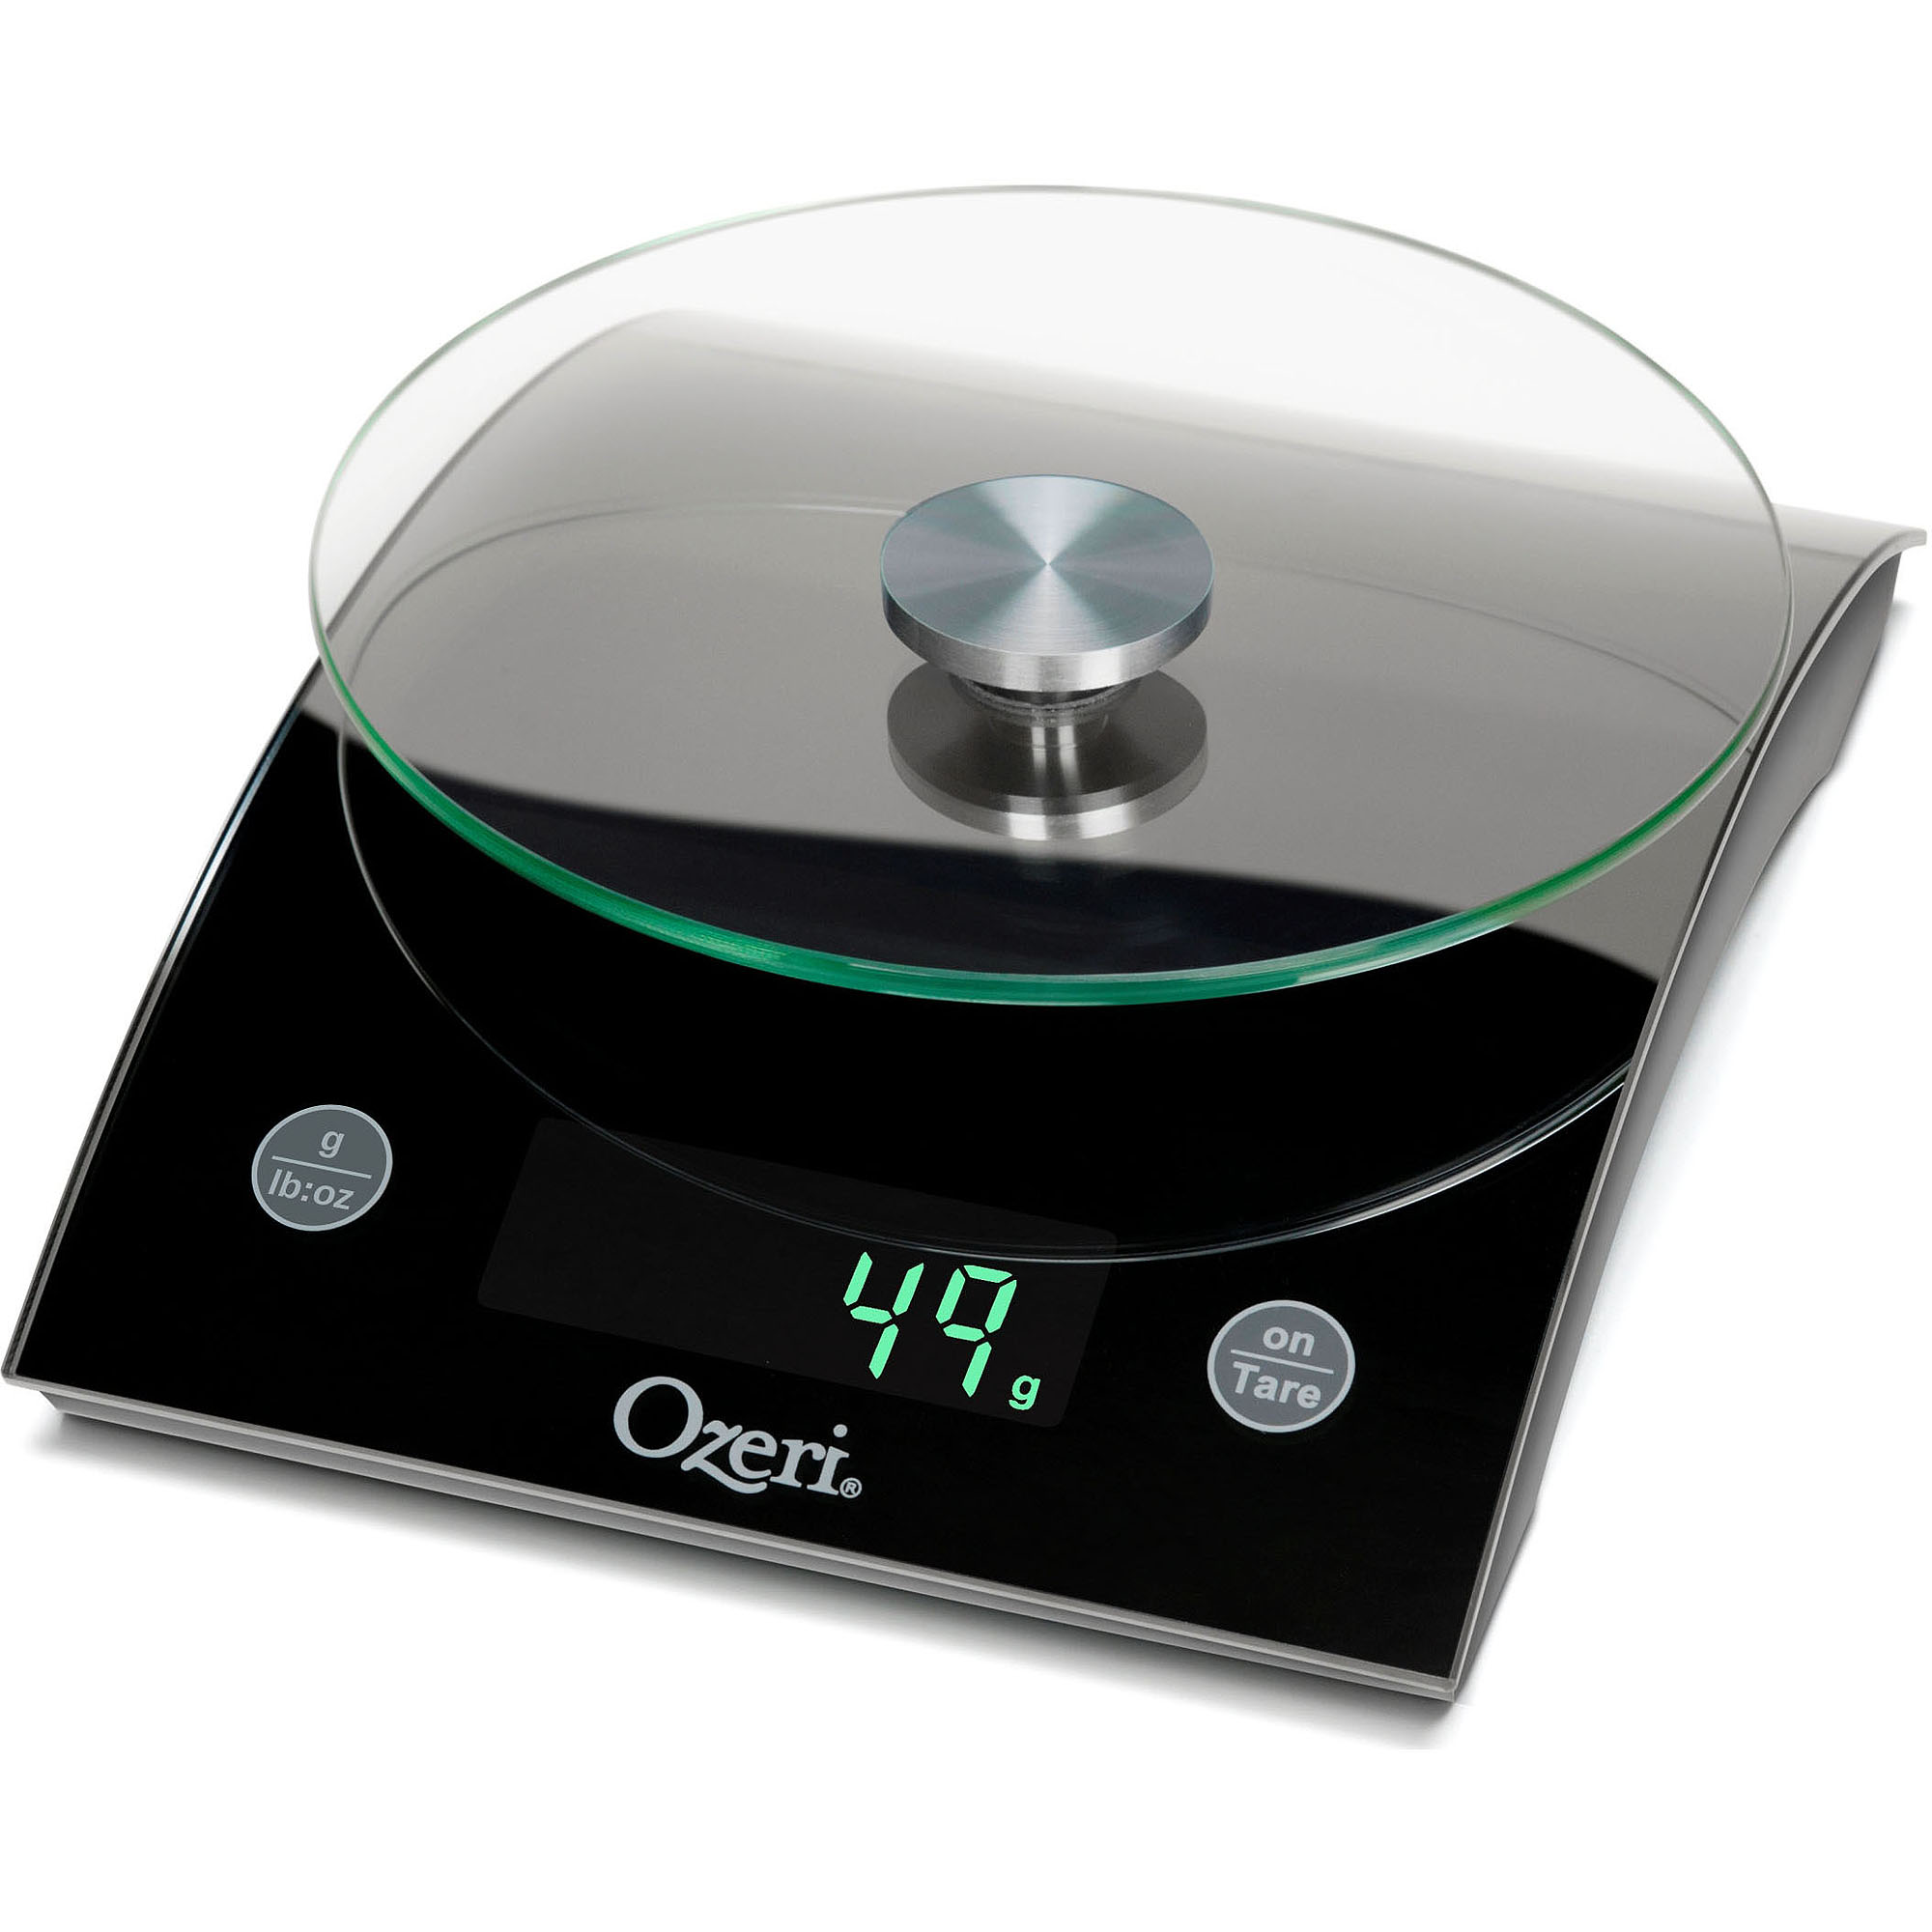 The Epicurean 18 lbs LED Kitchen Scale by Ozeri, with Removable Glass Weighing Platform